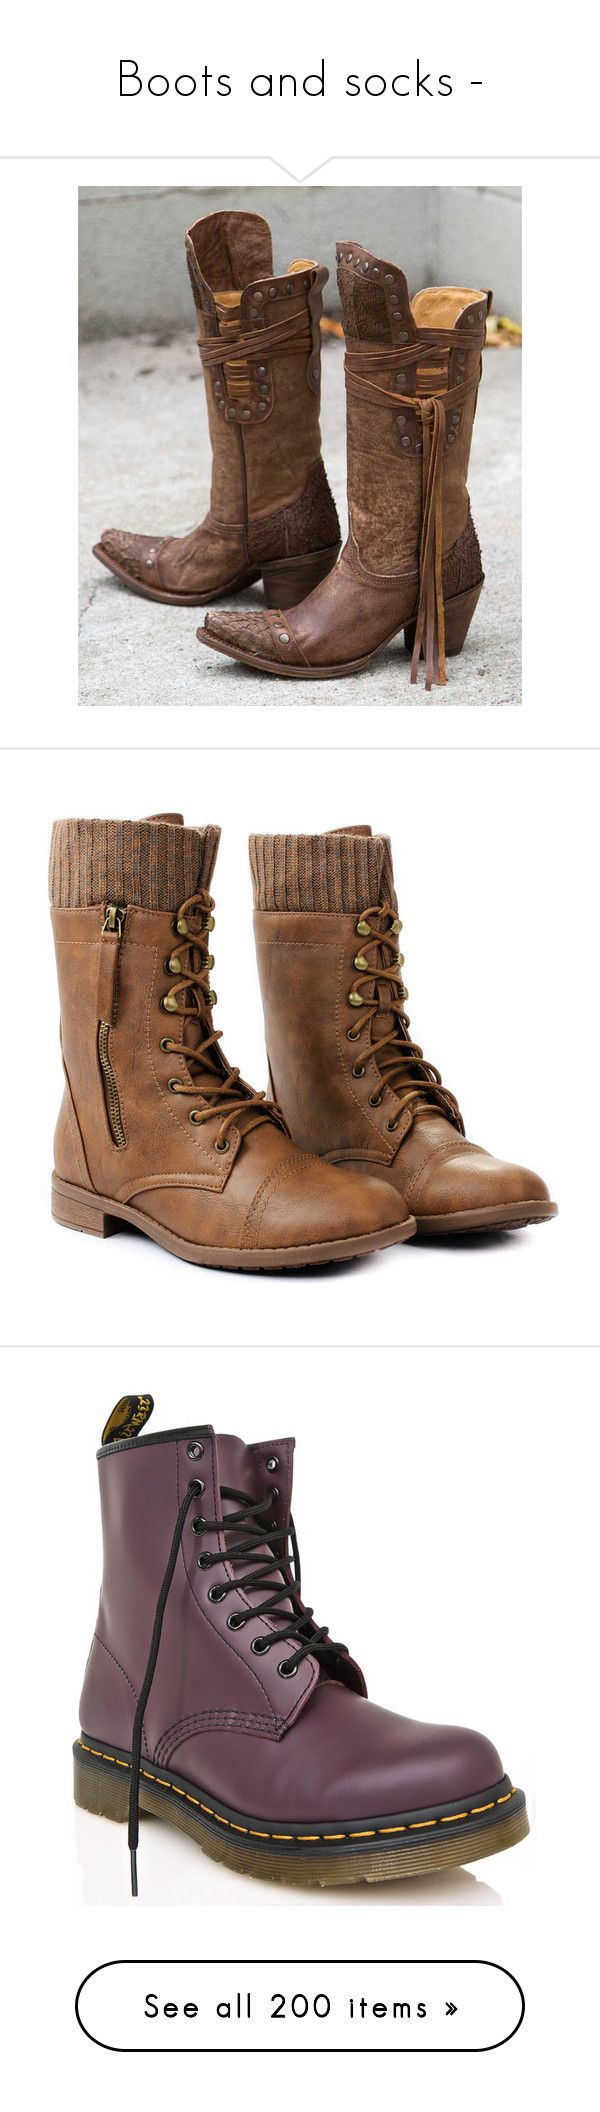 """Boots and socks -"" by argboo on Polyvore featuring shoes, boots, brown, equestrian boots, brown equestrian boots, vintage equestrian boots, brown riding boots, vintage brown boots, botas and sapatos"